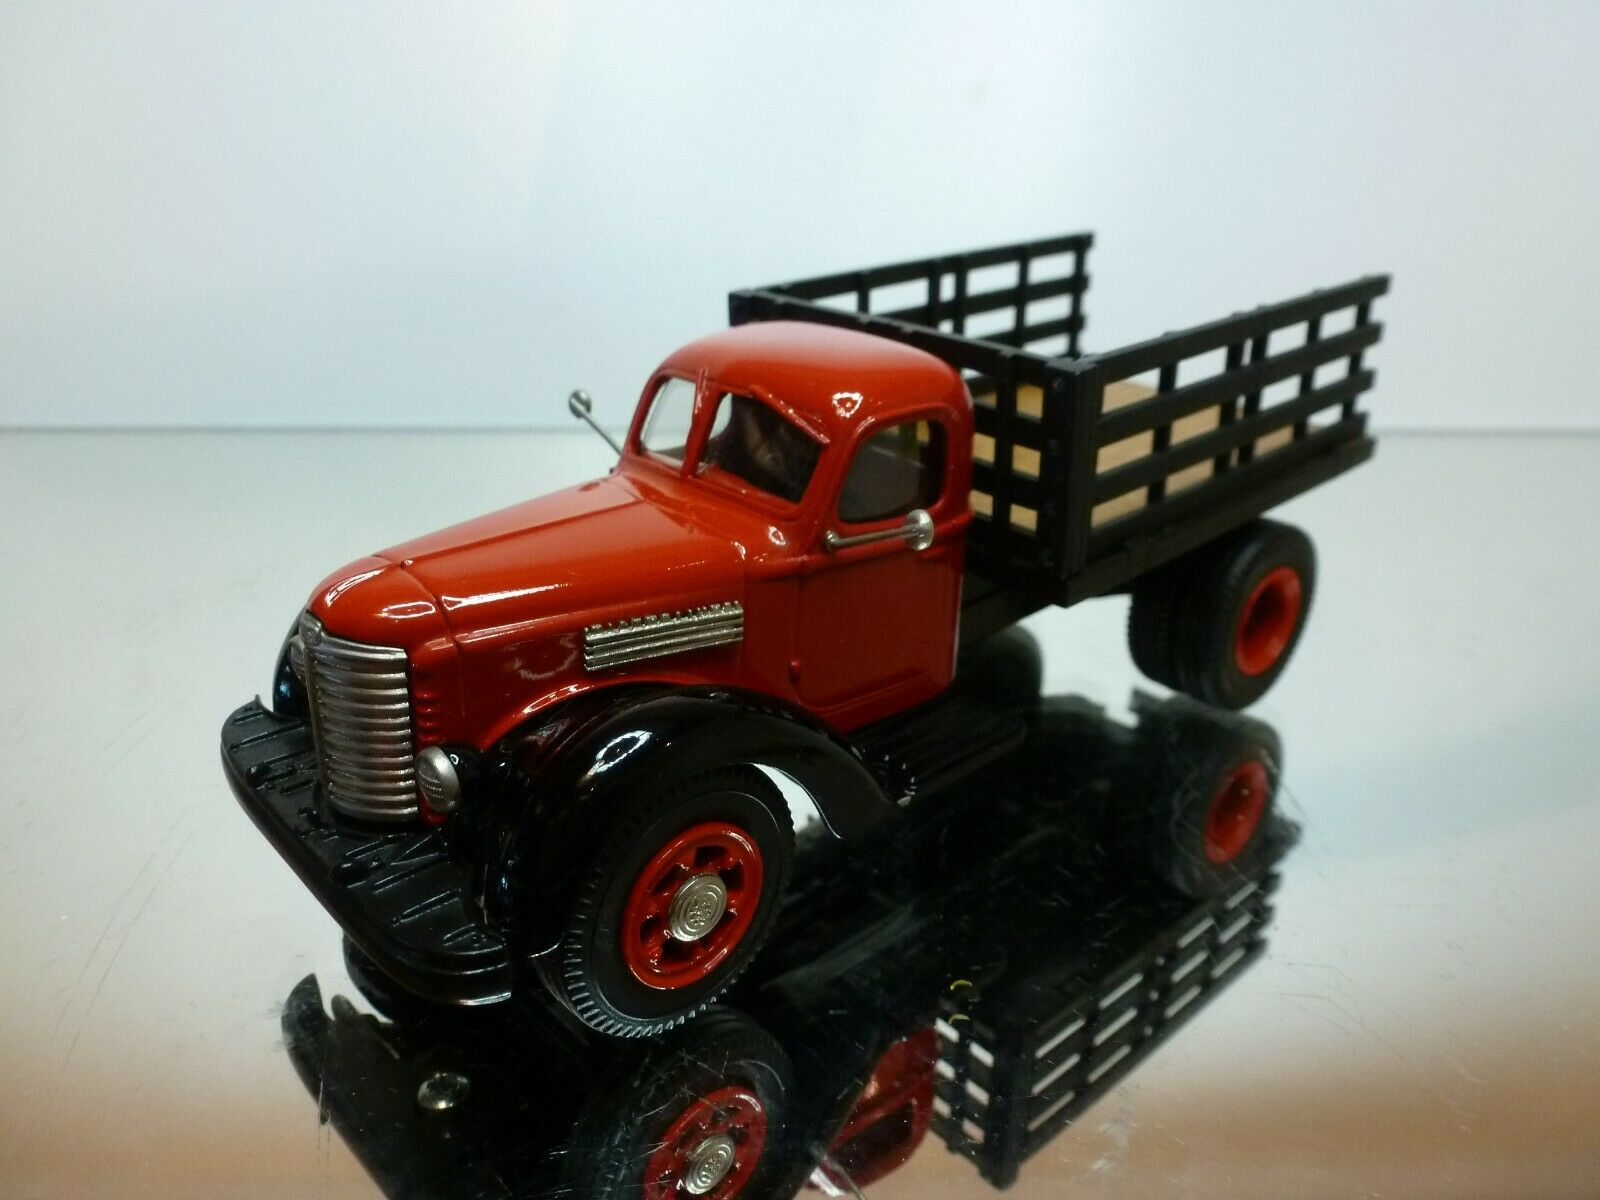 US MODEL MINT 19 INTERNATIONAL KB12 1947 TRUCK - rosso 1 43 - VERY GOOD CONDITION